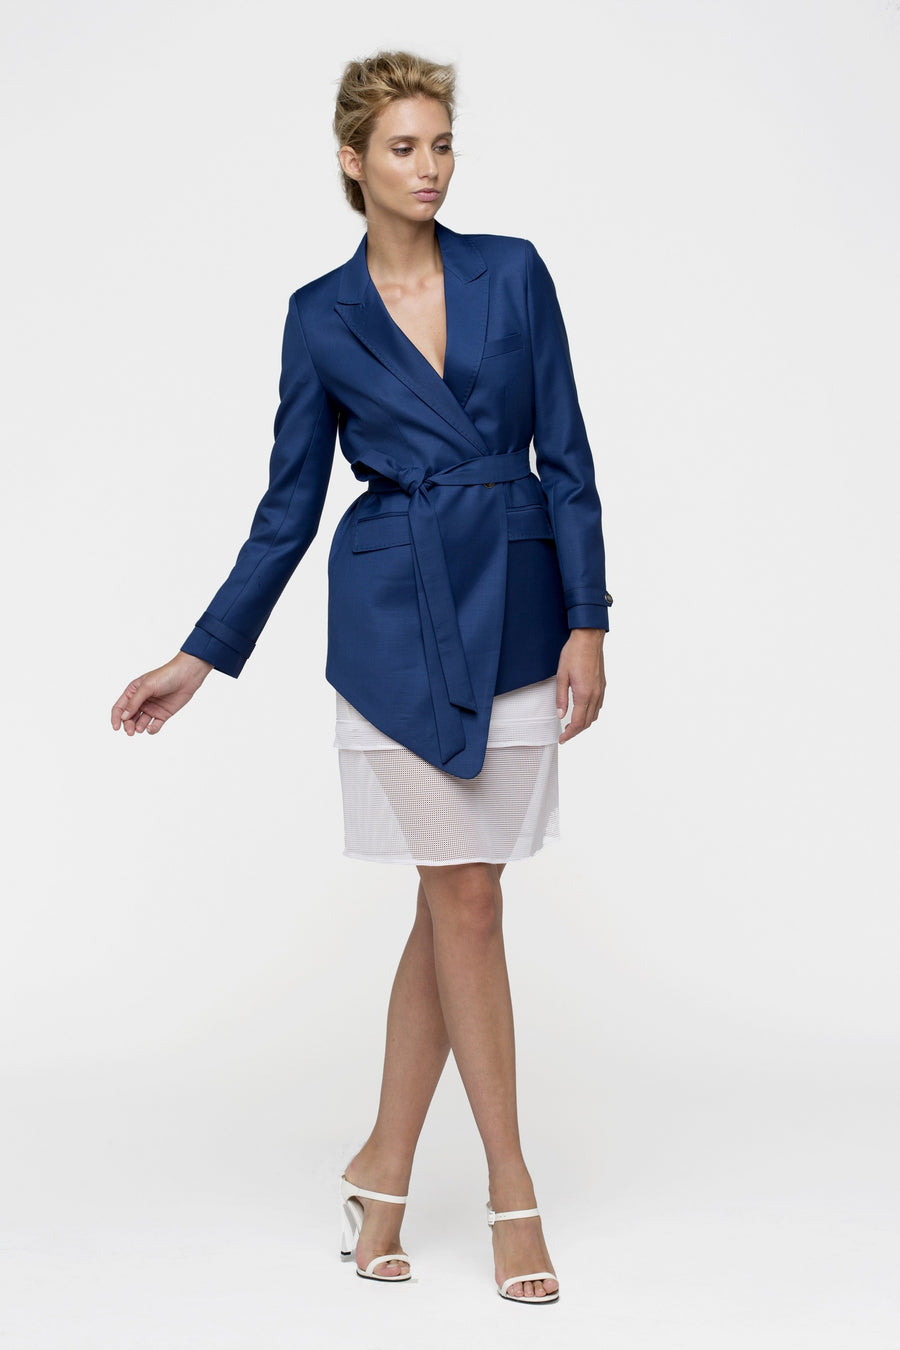 Blue Navy Satin Silk Belted Asymetric Jacket Women By Lucie Brochard